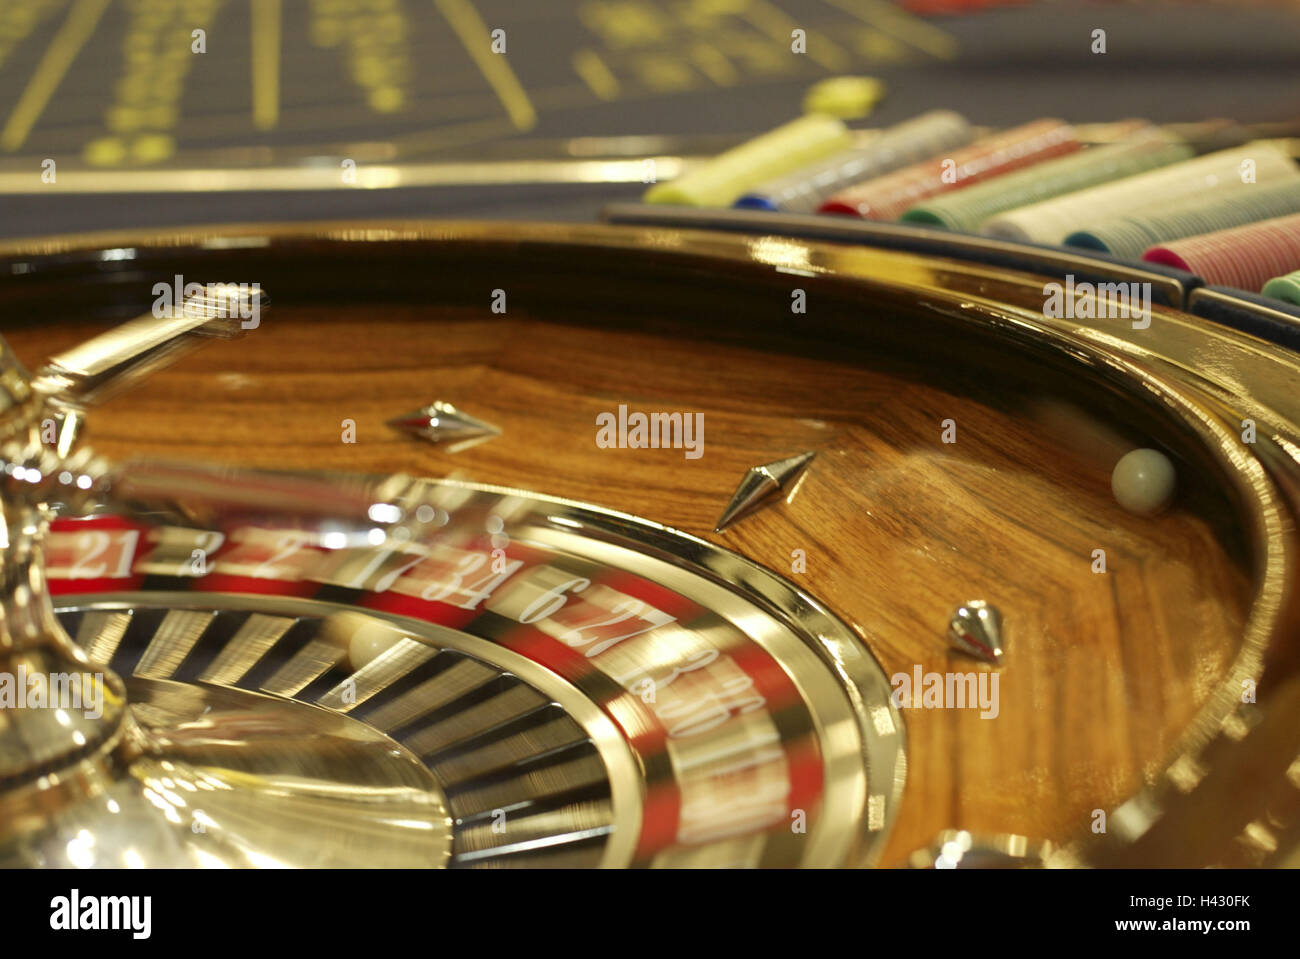 Casino, roulette, detail, blur casino, game chance, game, risk, chance, roulette game, roulette, roulette game, - Stock Image